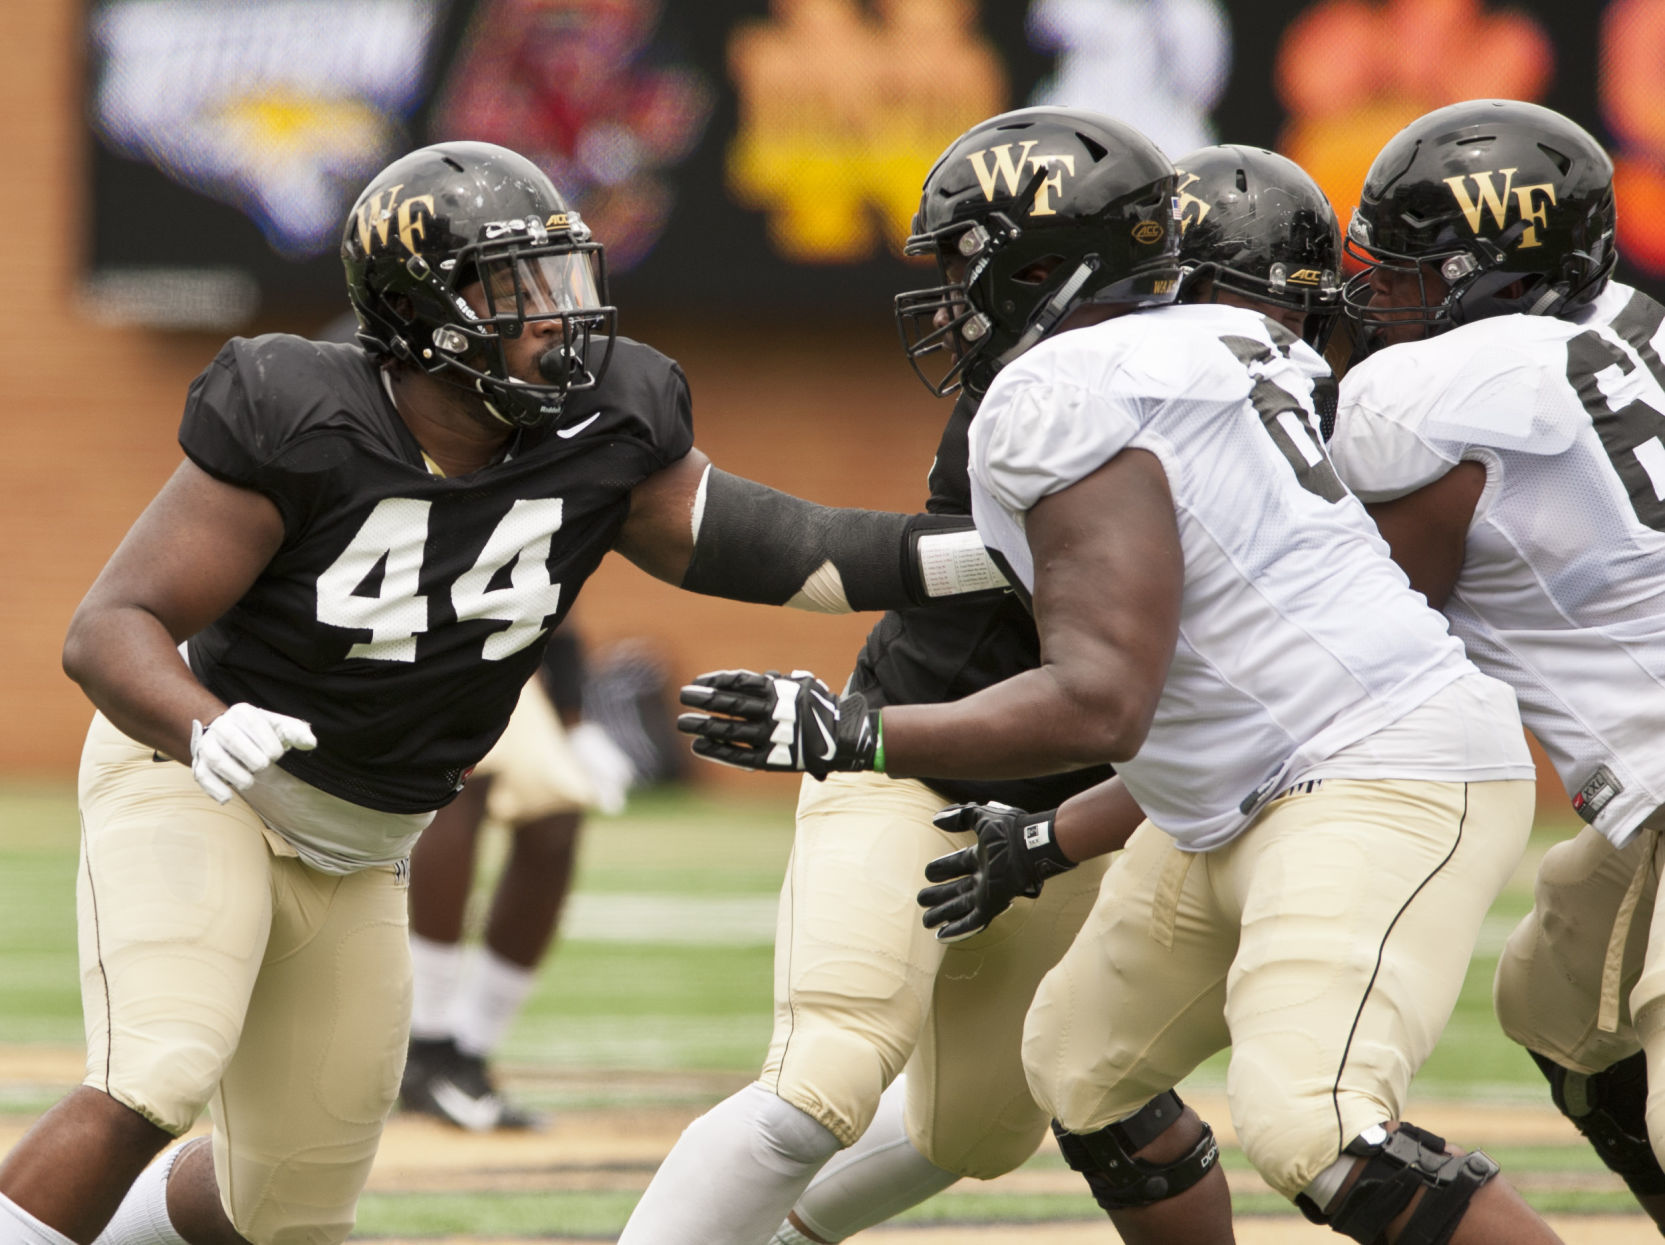 Wake Forest player suffers 'number of serious injuries in his lower body' in car accident   Winston Salem Journal